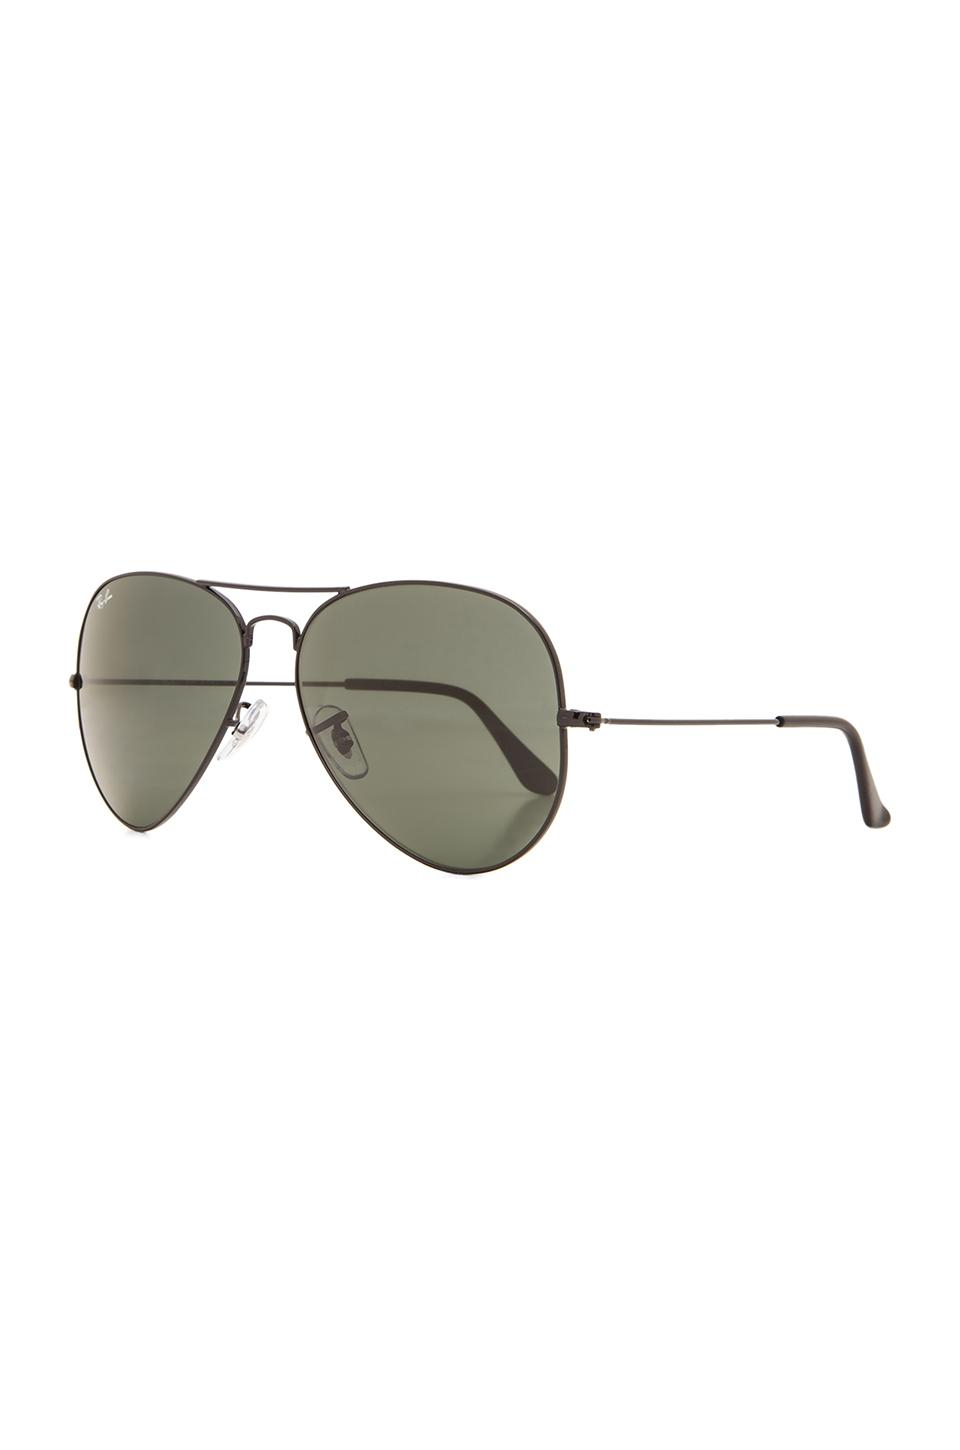 Ray ban aviator large metal ii in black for men lyst for Ray ban aviator miroir homme